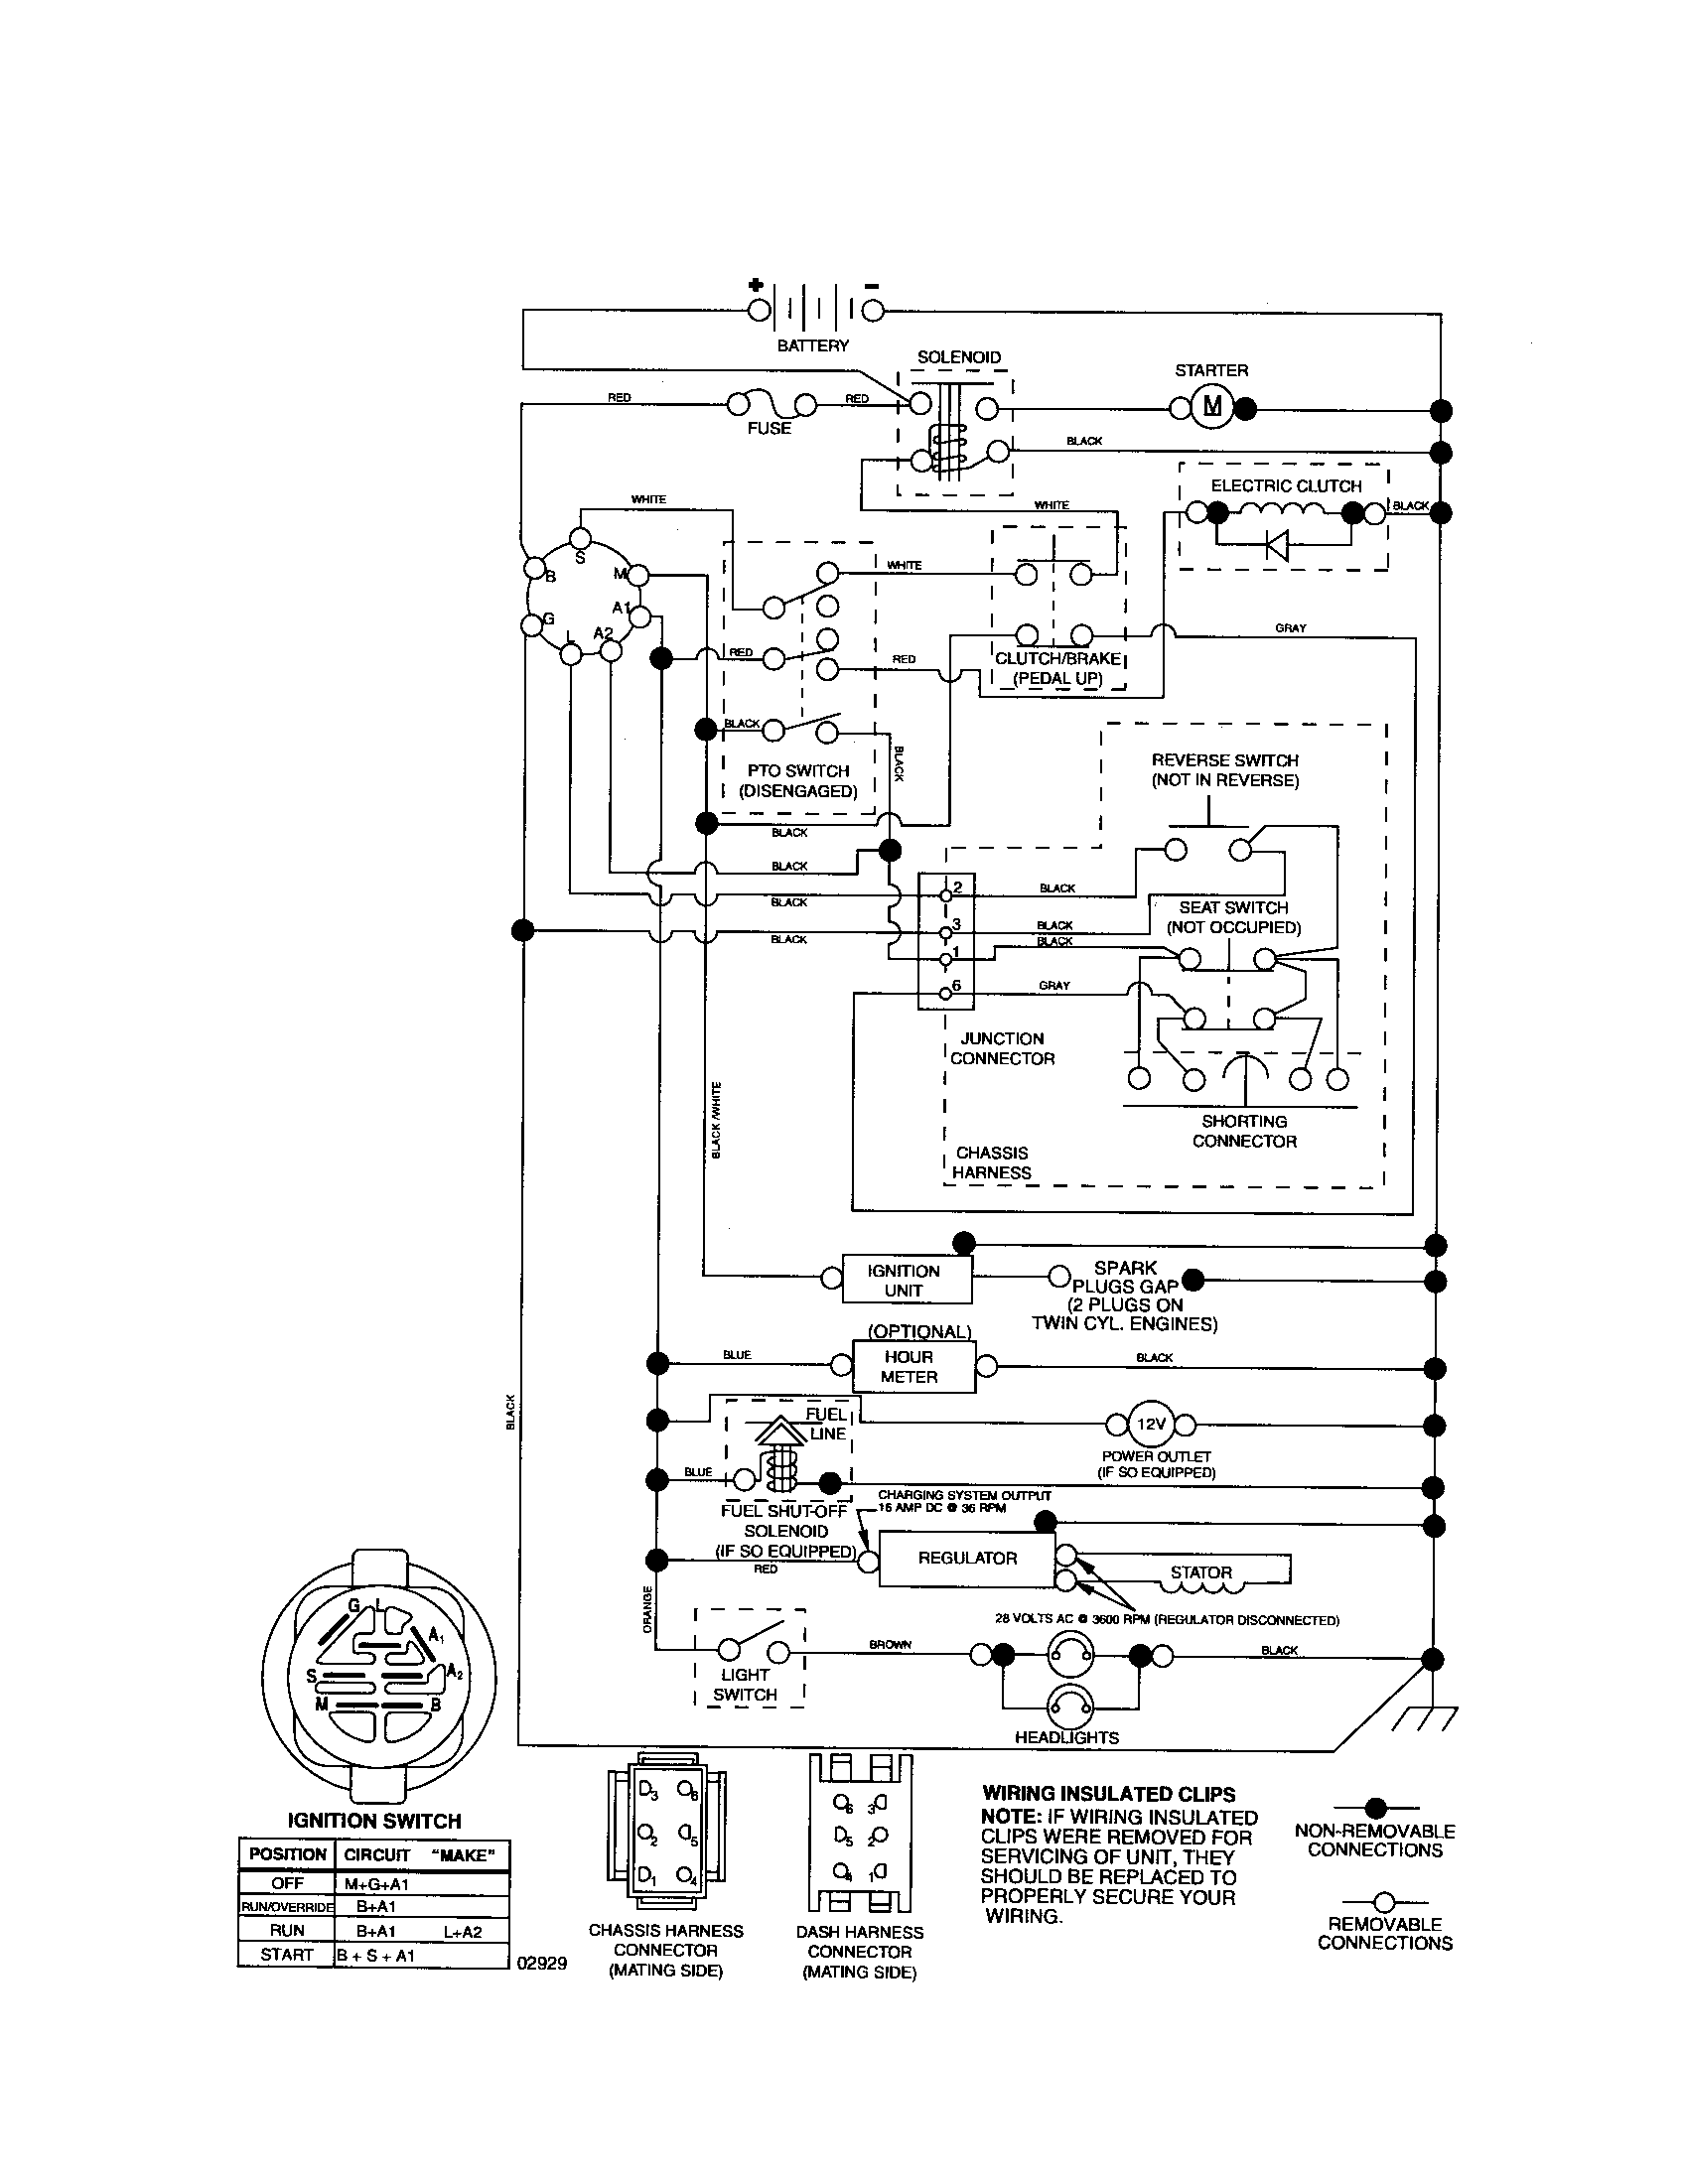 Jd 310 Wiring Diagram. Diagrams. Get Free Image About